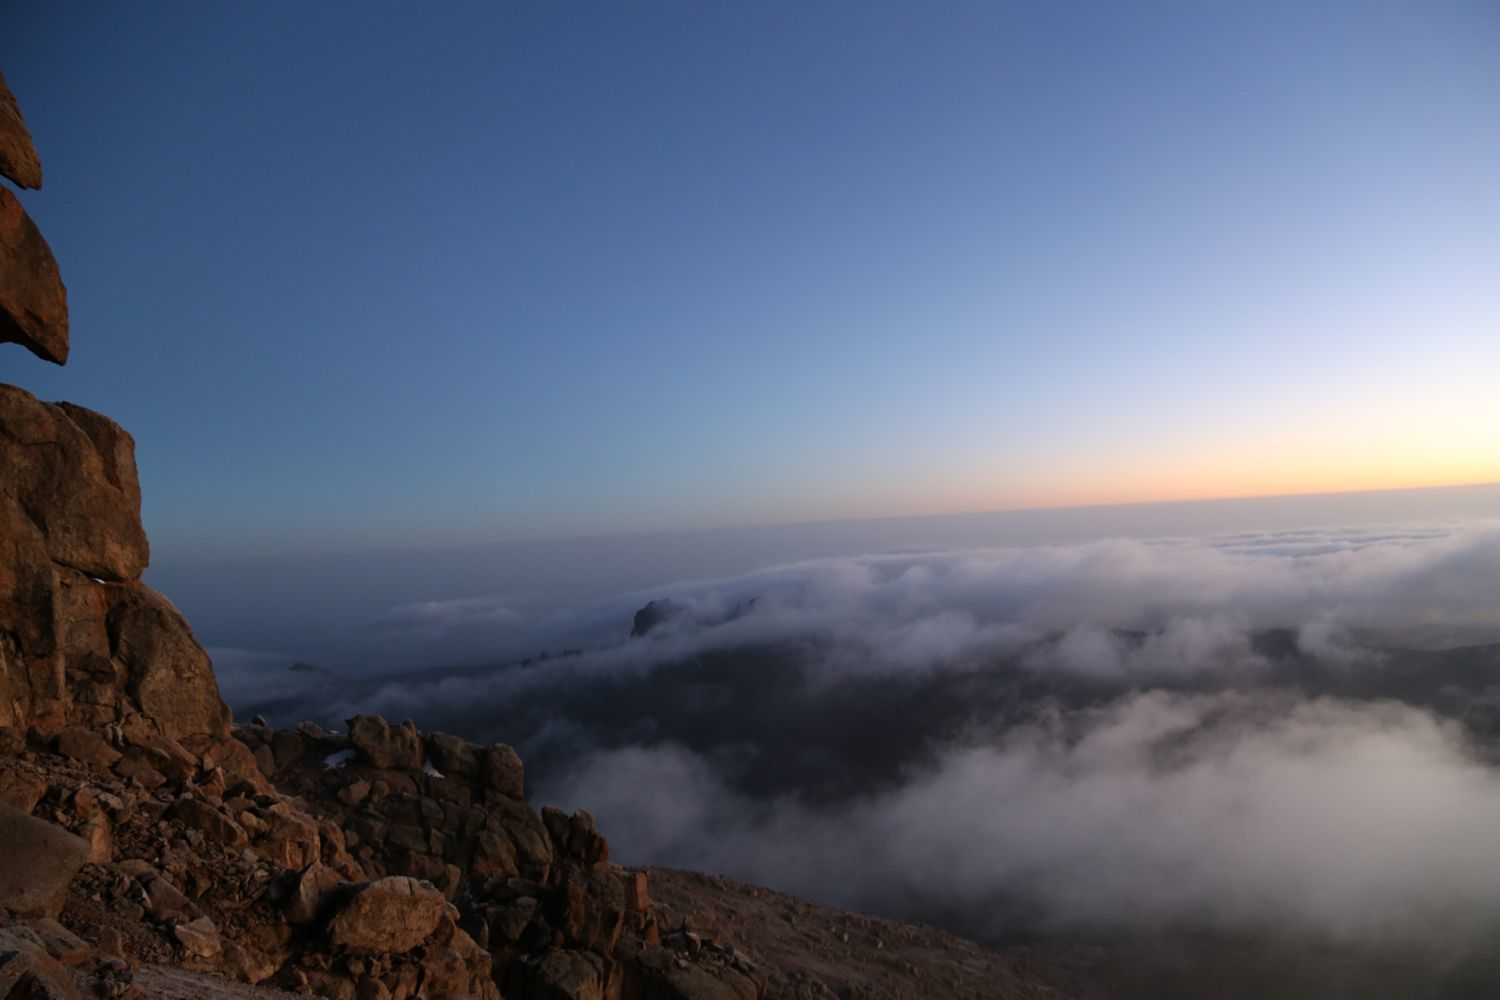 Breath-taking sunrise at the top